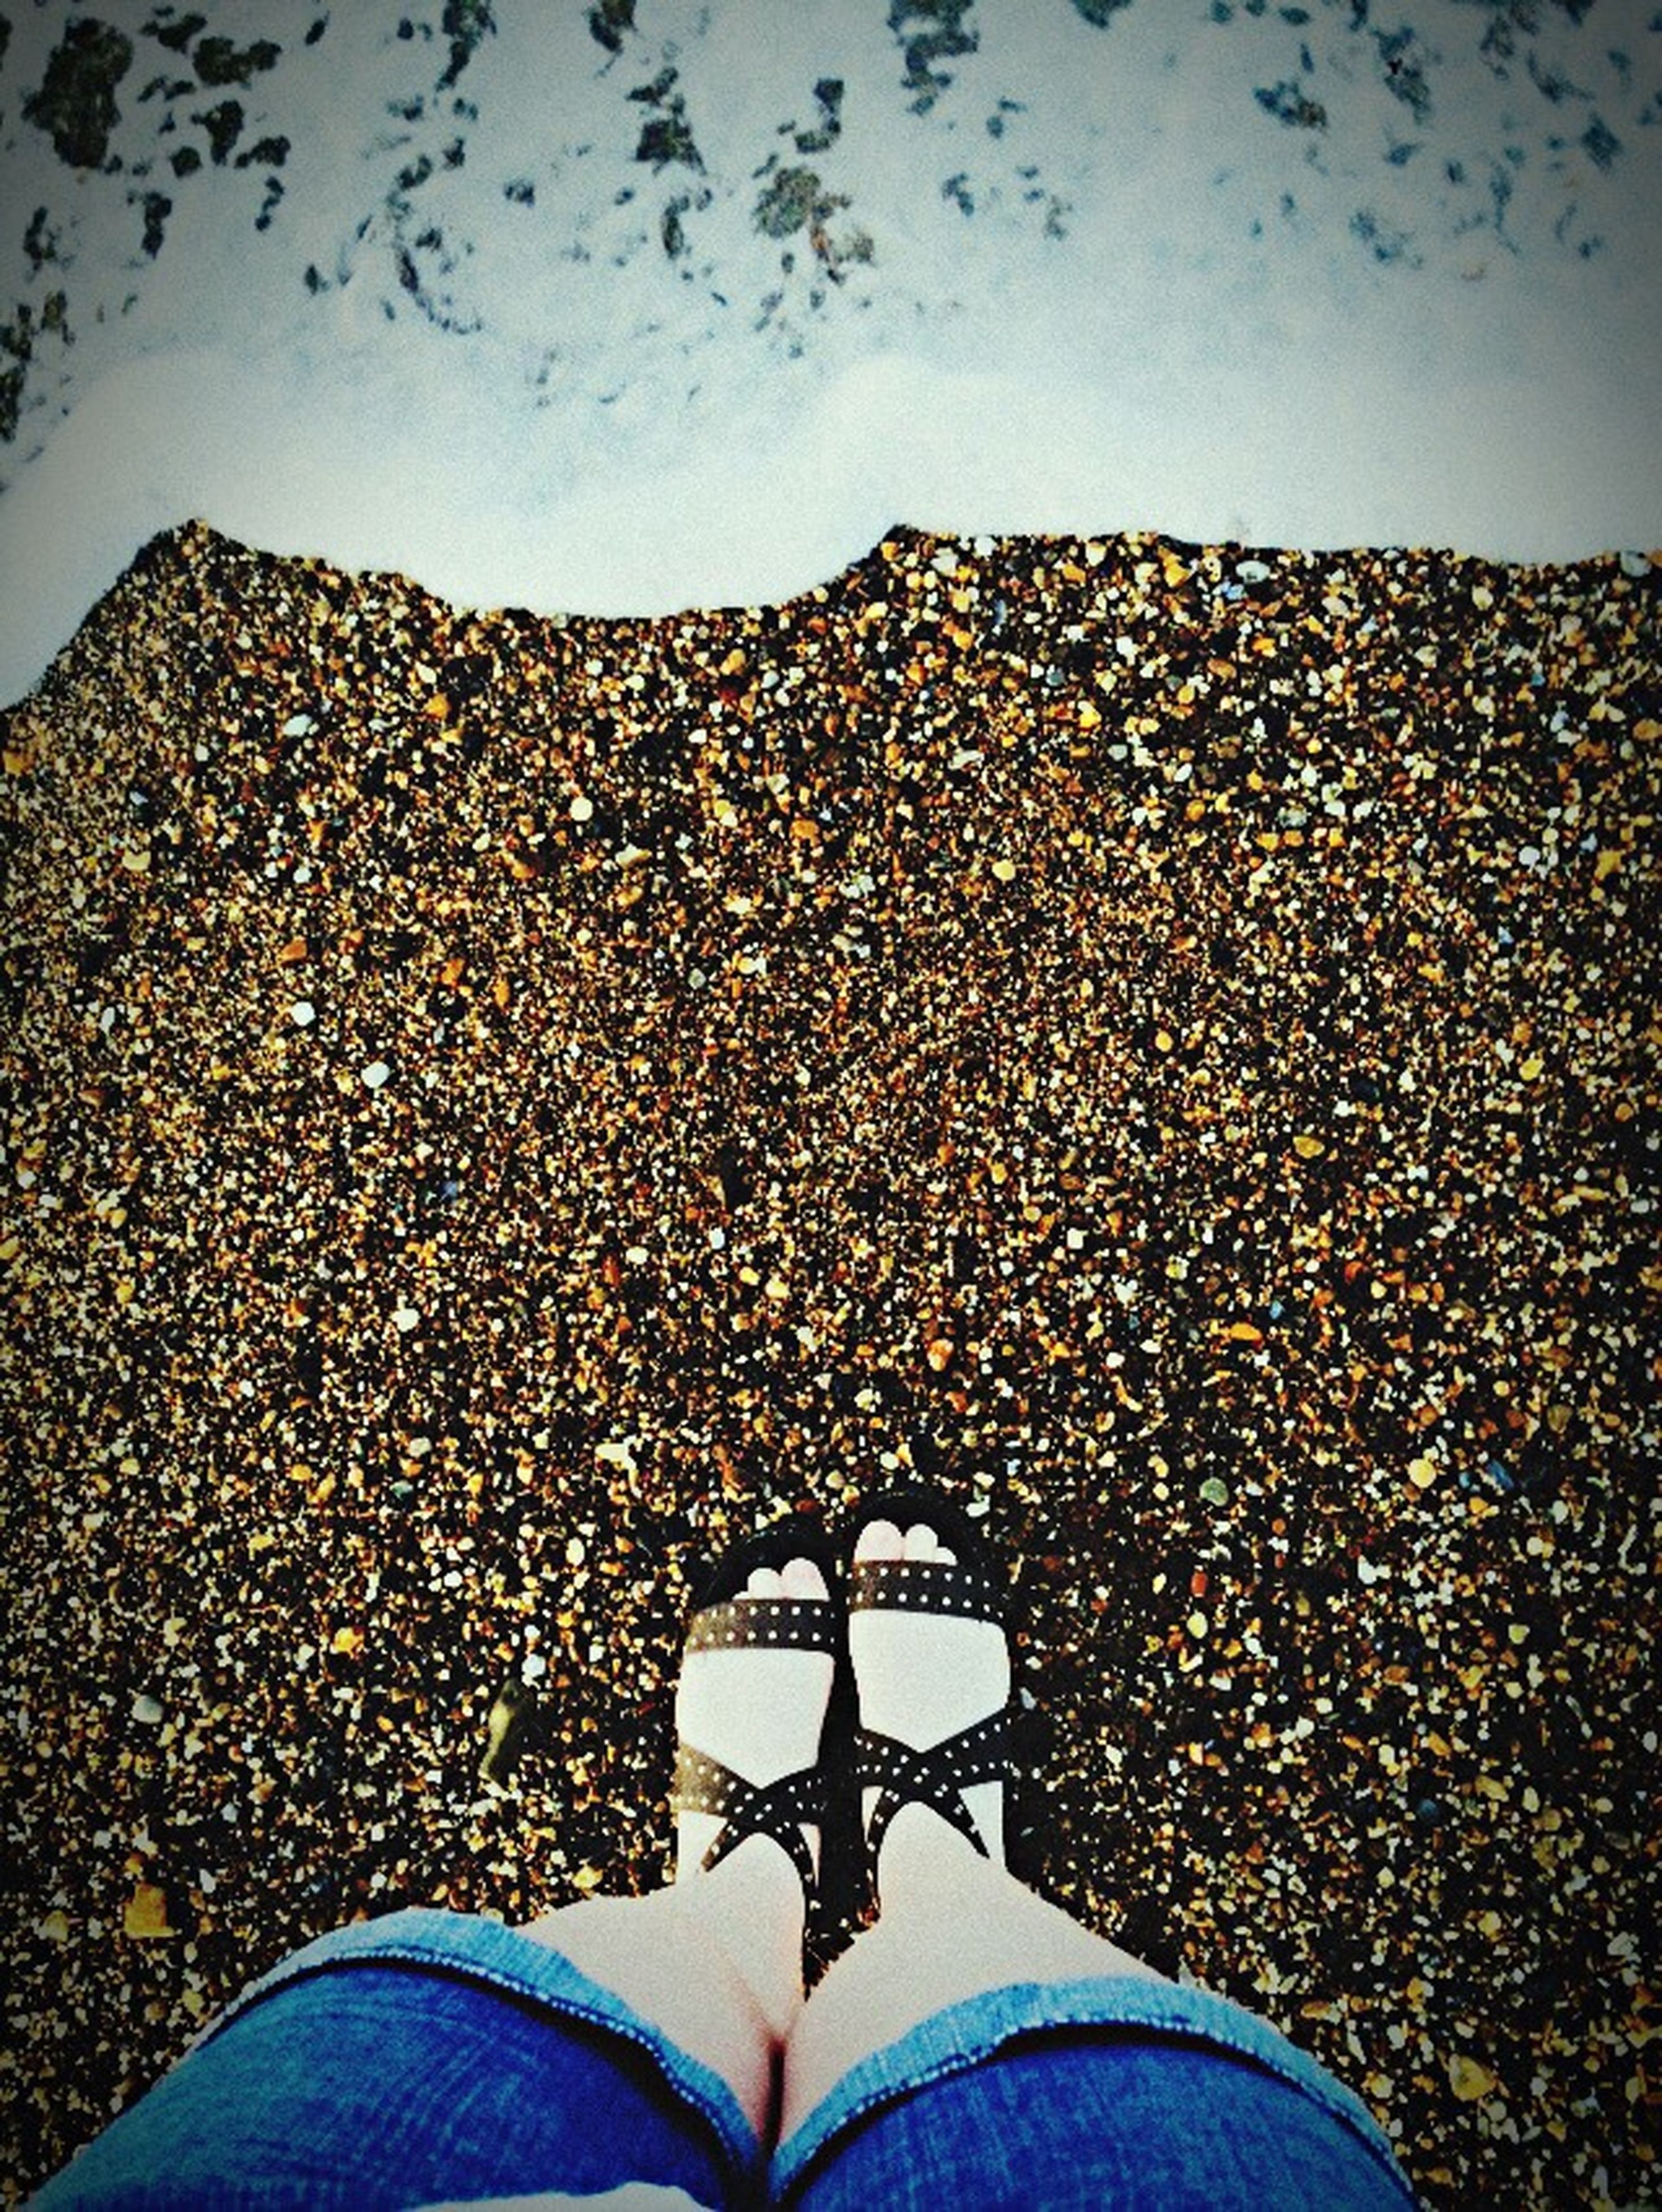 low section, real people, personal perspective, human leg, shoe, human body part, lifestyles, standing, one person, leisure activity, sky, outdoors, day, close-up